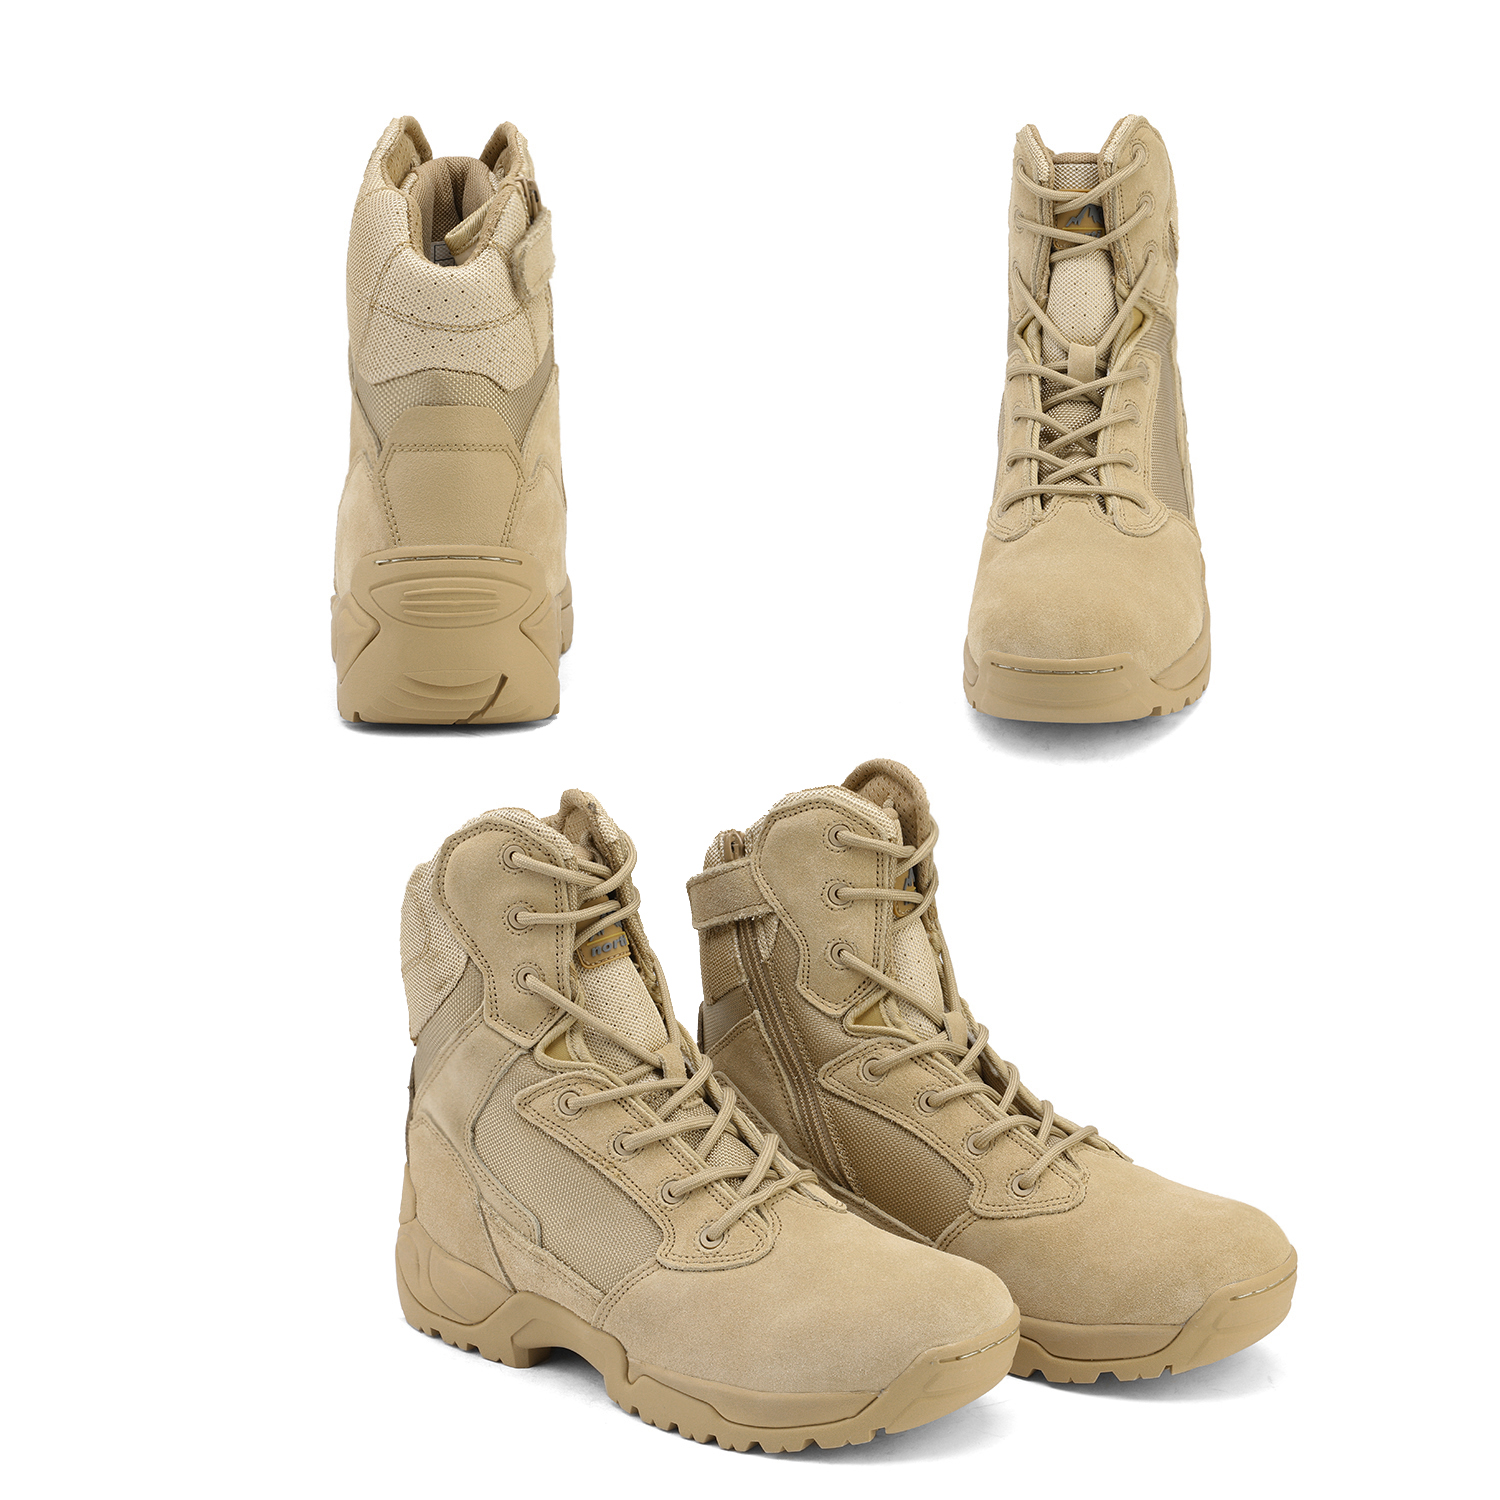 Men-039-s-Military-Tactical-Work-Boots-Hiking-Motorcycle-Combat-Bootie-New thumbnail 28